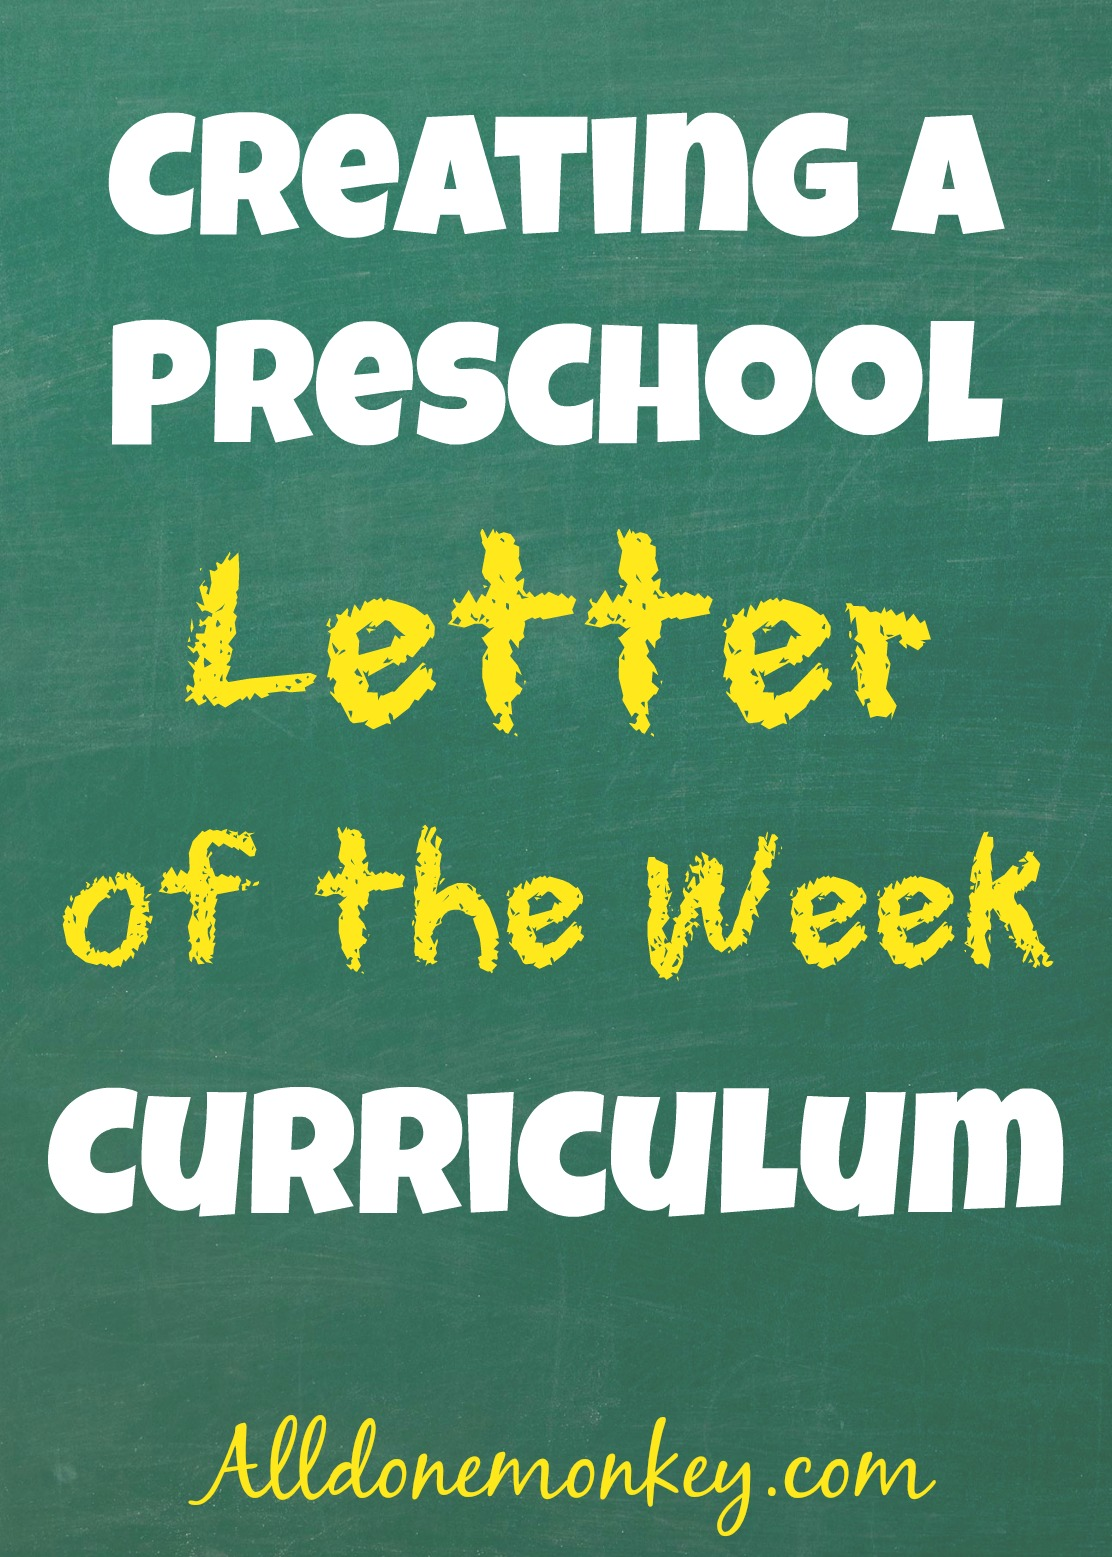 Creating a Letter of the Week Preschool Curriculum | Alldonemonkey.com